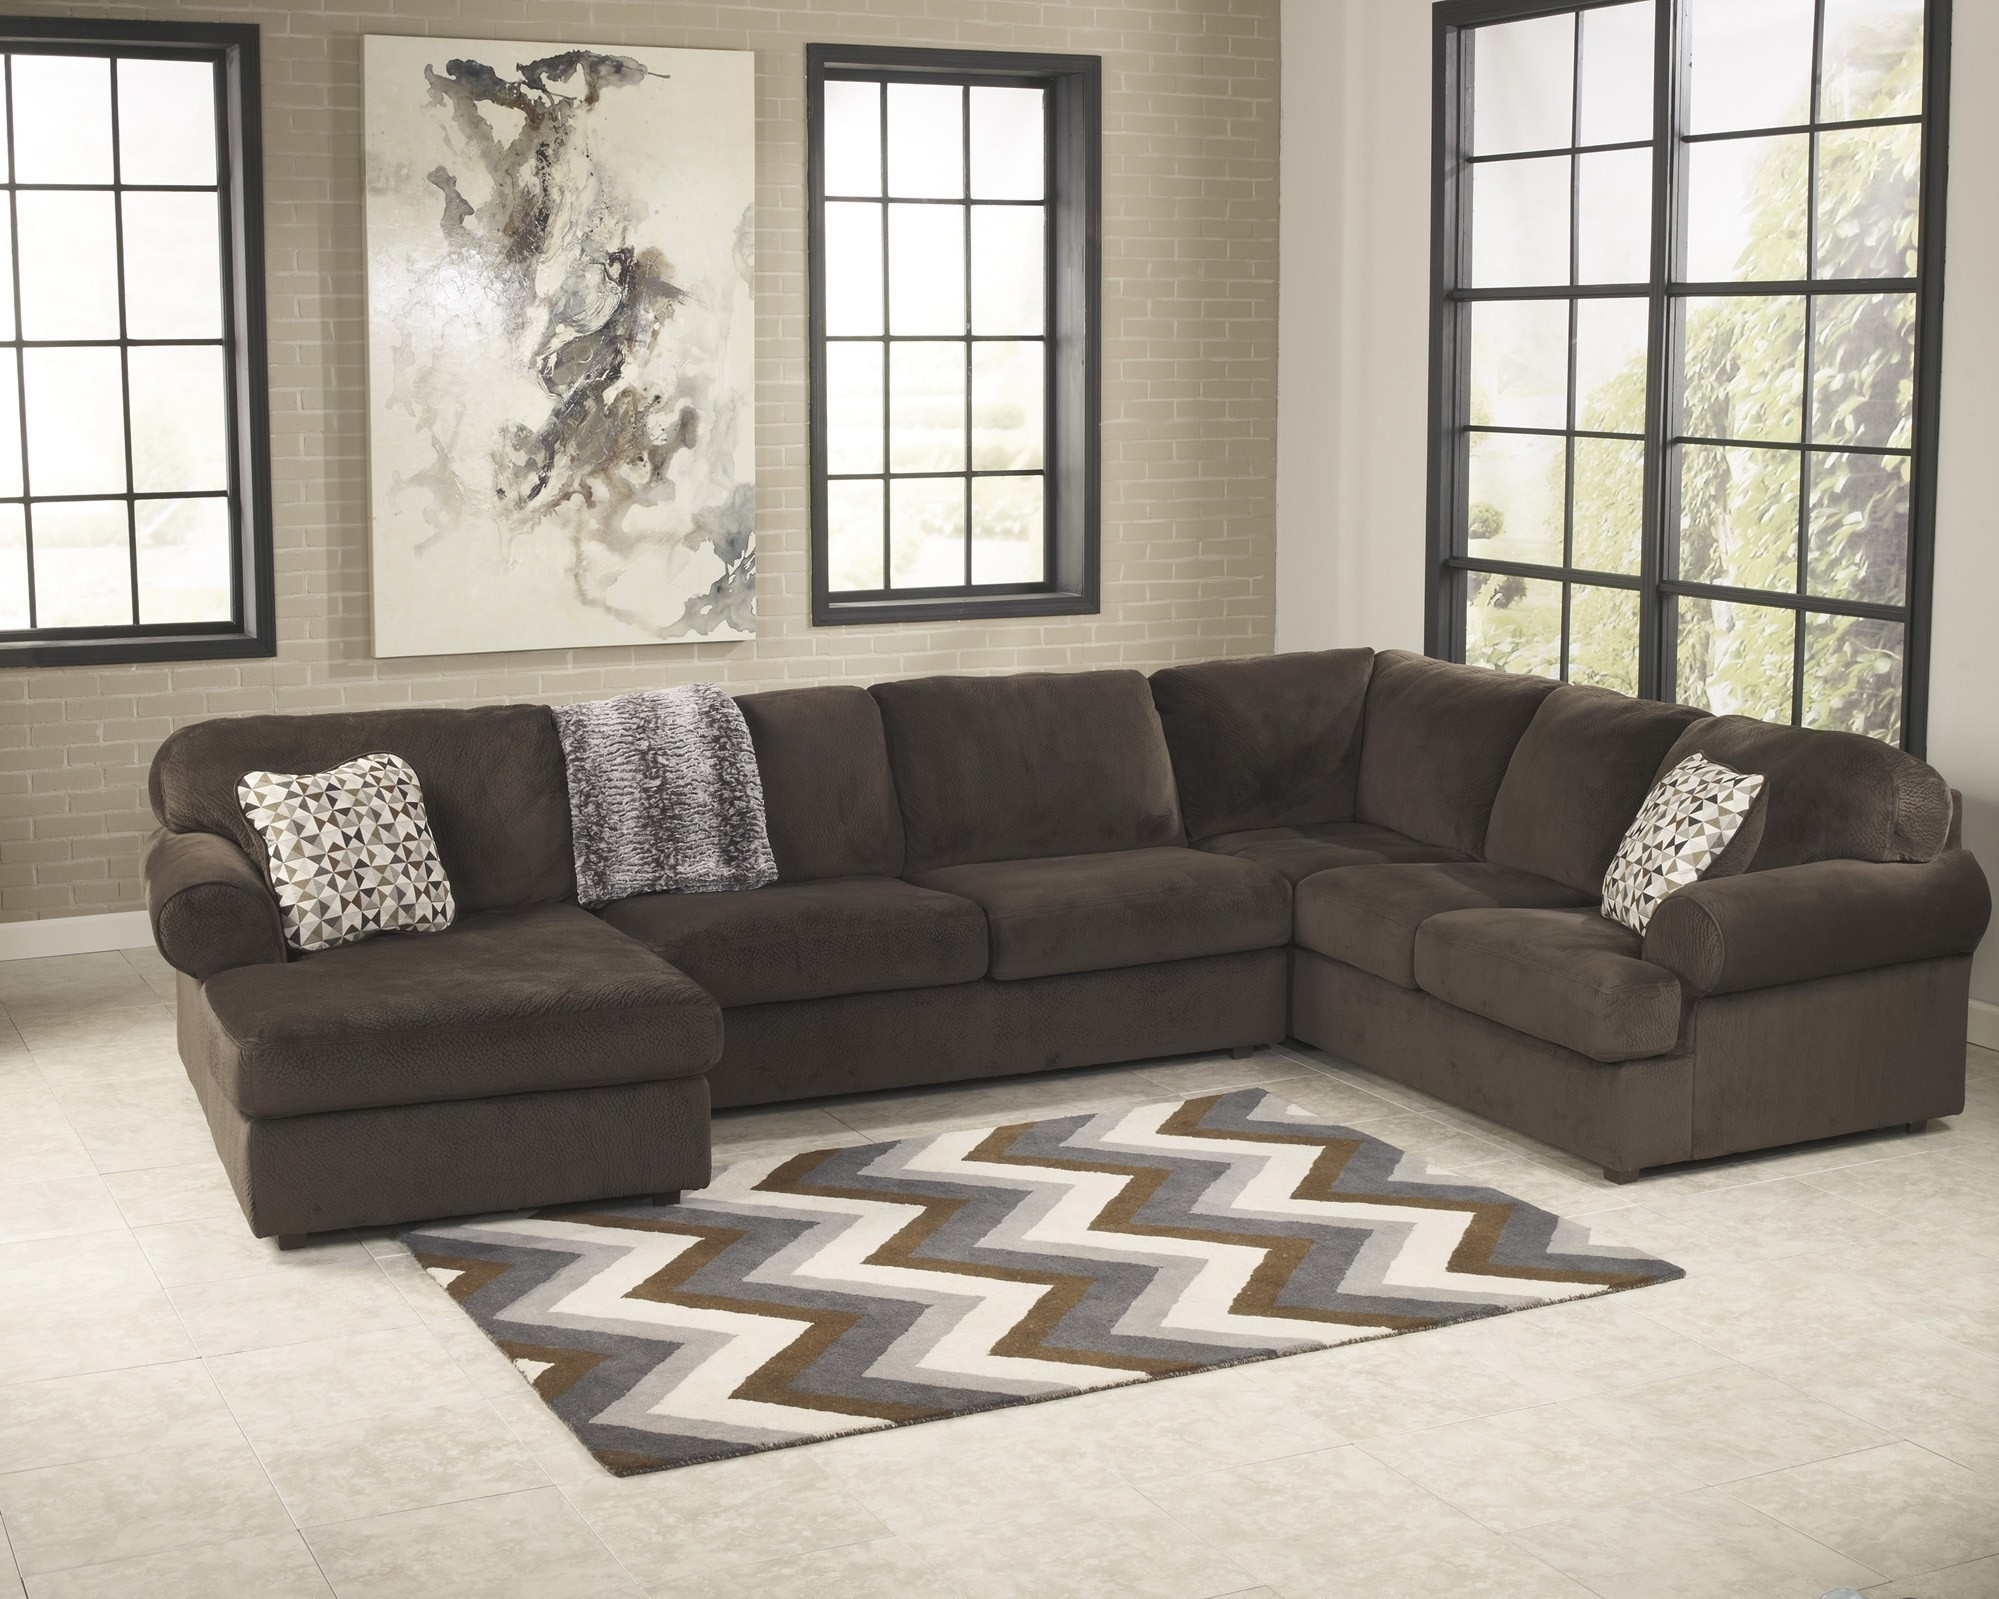 3 Piece Sectional Malbry Point W Laf Chaise Living Spaces 223533 0 Pertaining To Malbry Point 3 Piece Sectionals With Raf Chaise (View 12 of 25)